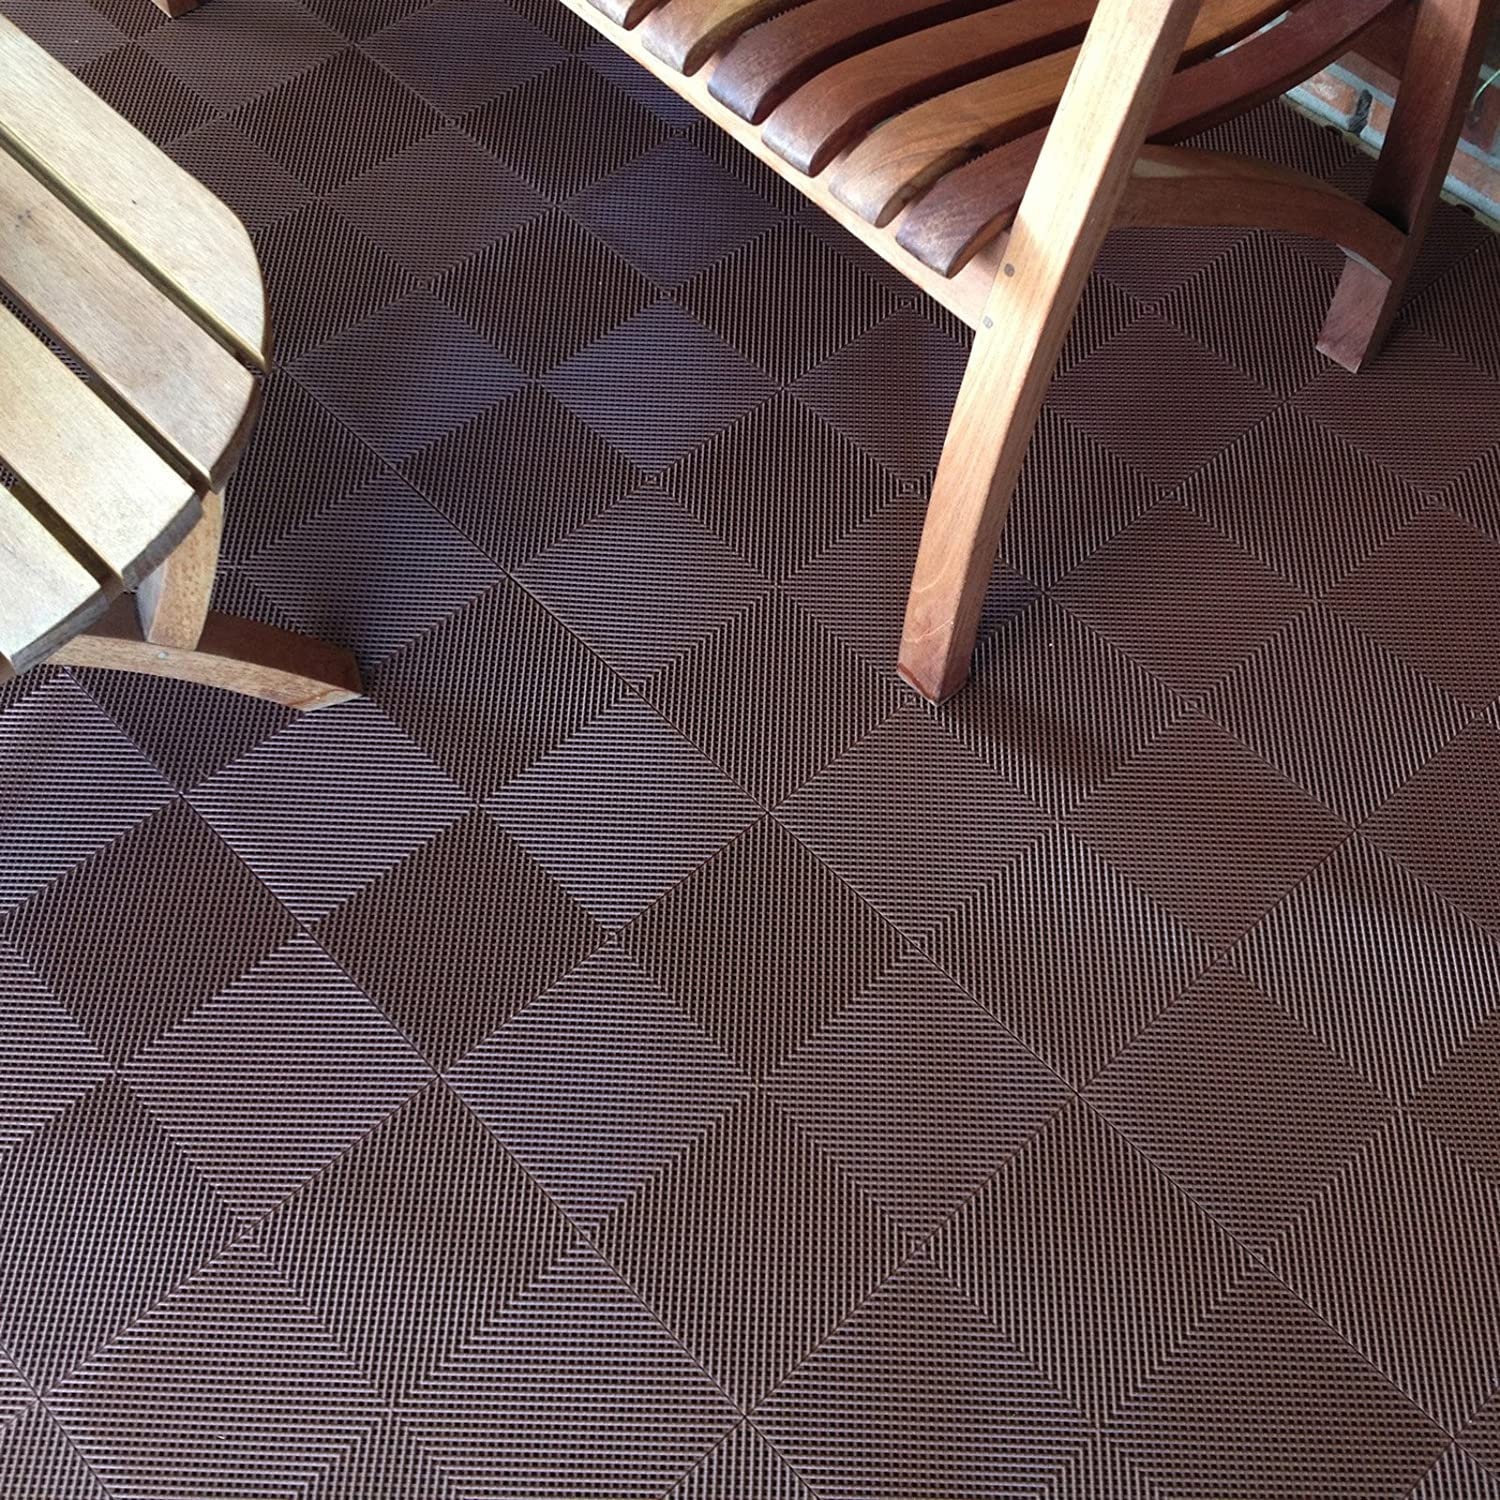 Amazon blocktile b2us4630 deck and patio flooring amazon blocktile b2us4630 deck and patio flooring interlocking tiles perforated pack gray 30 pack home improvement dailygadgetfo Image collections